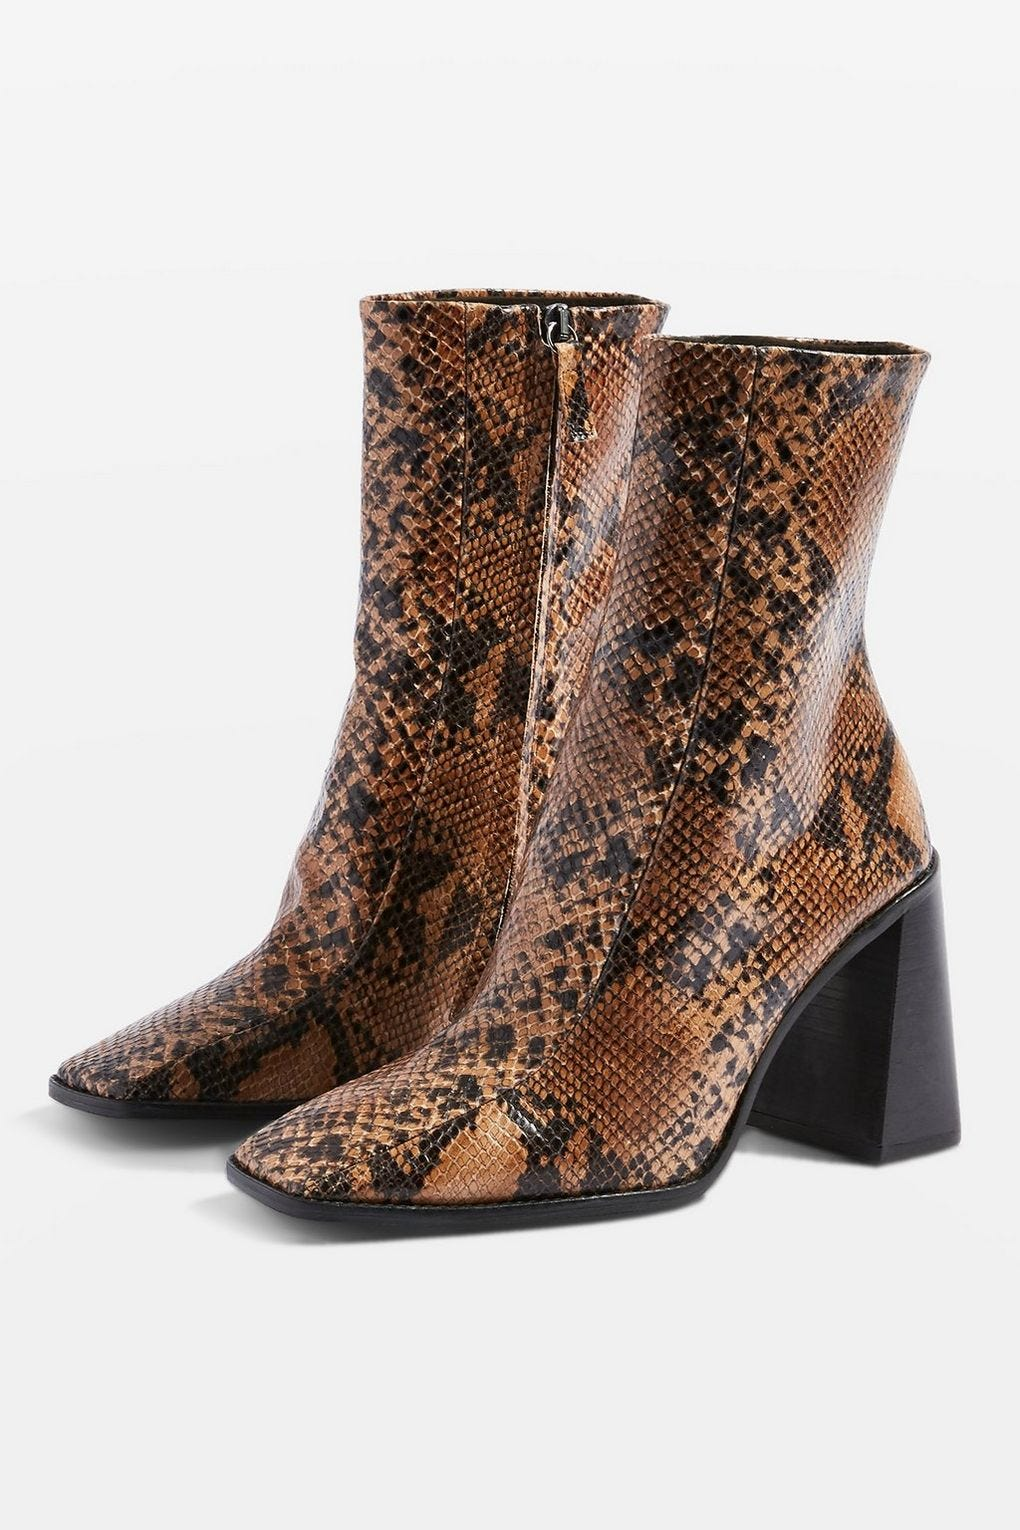 ba37fb186c2 Topshop. Hurricane High Ankle Boots